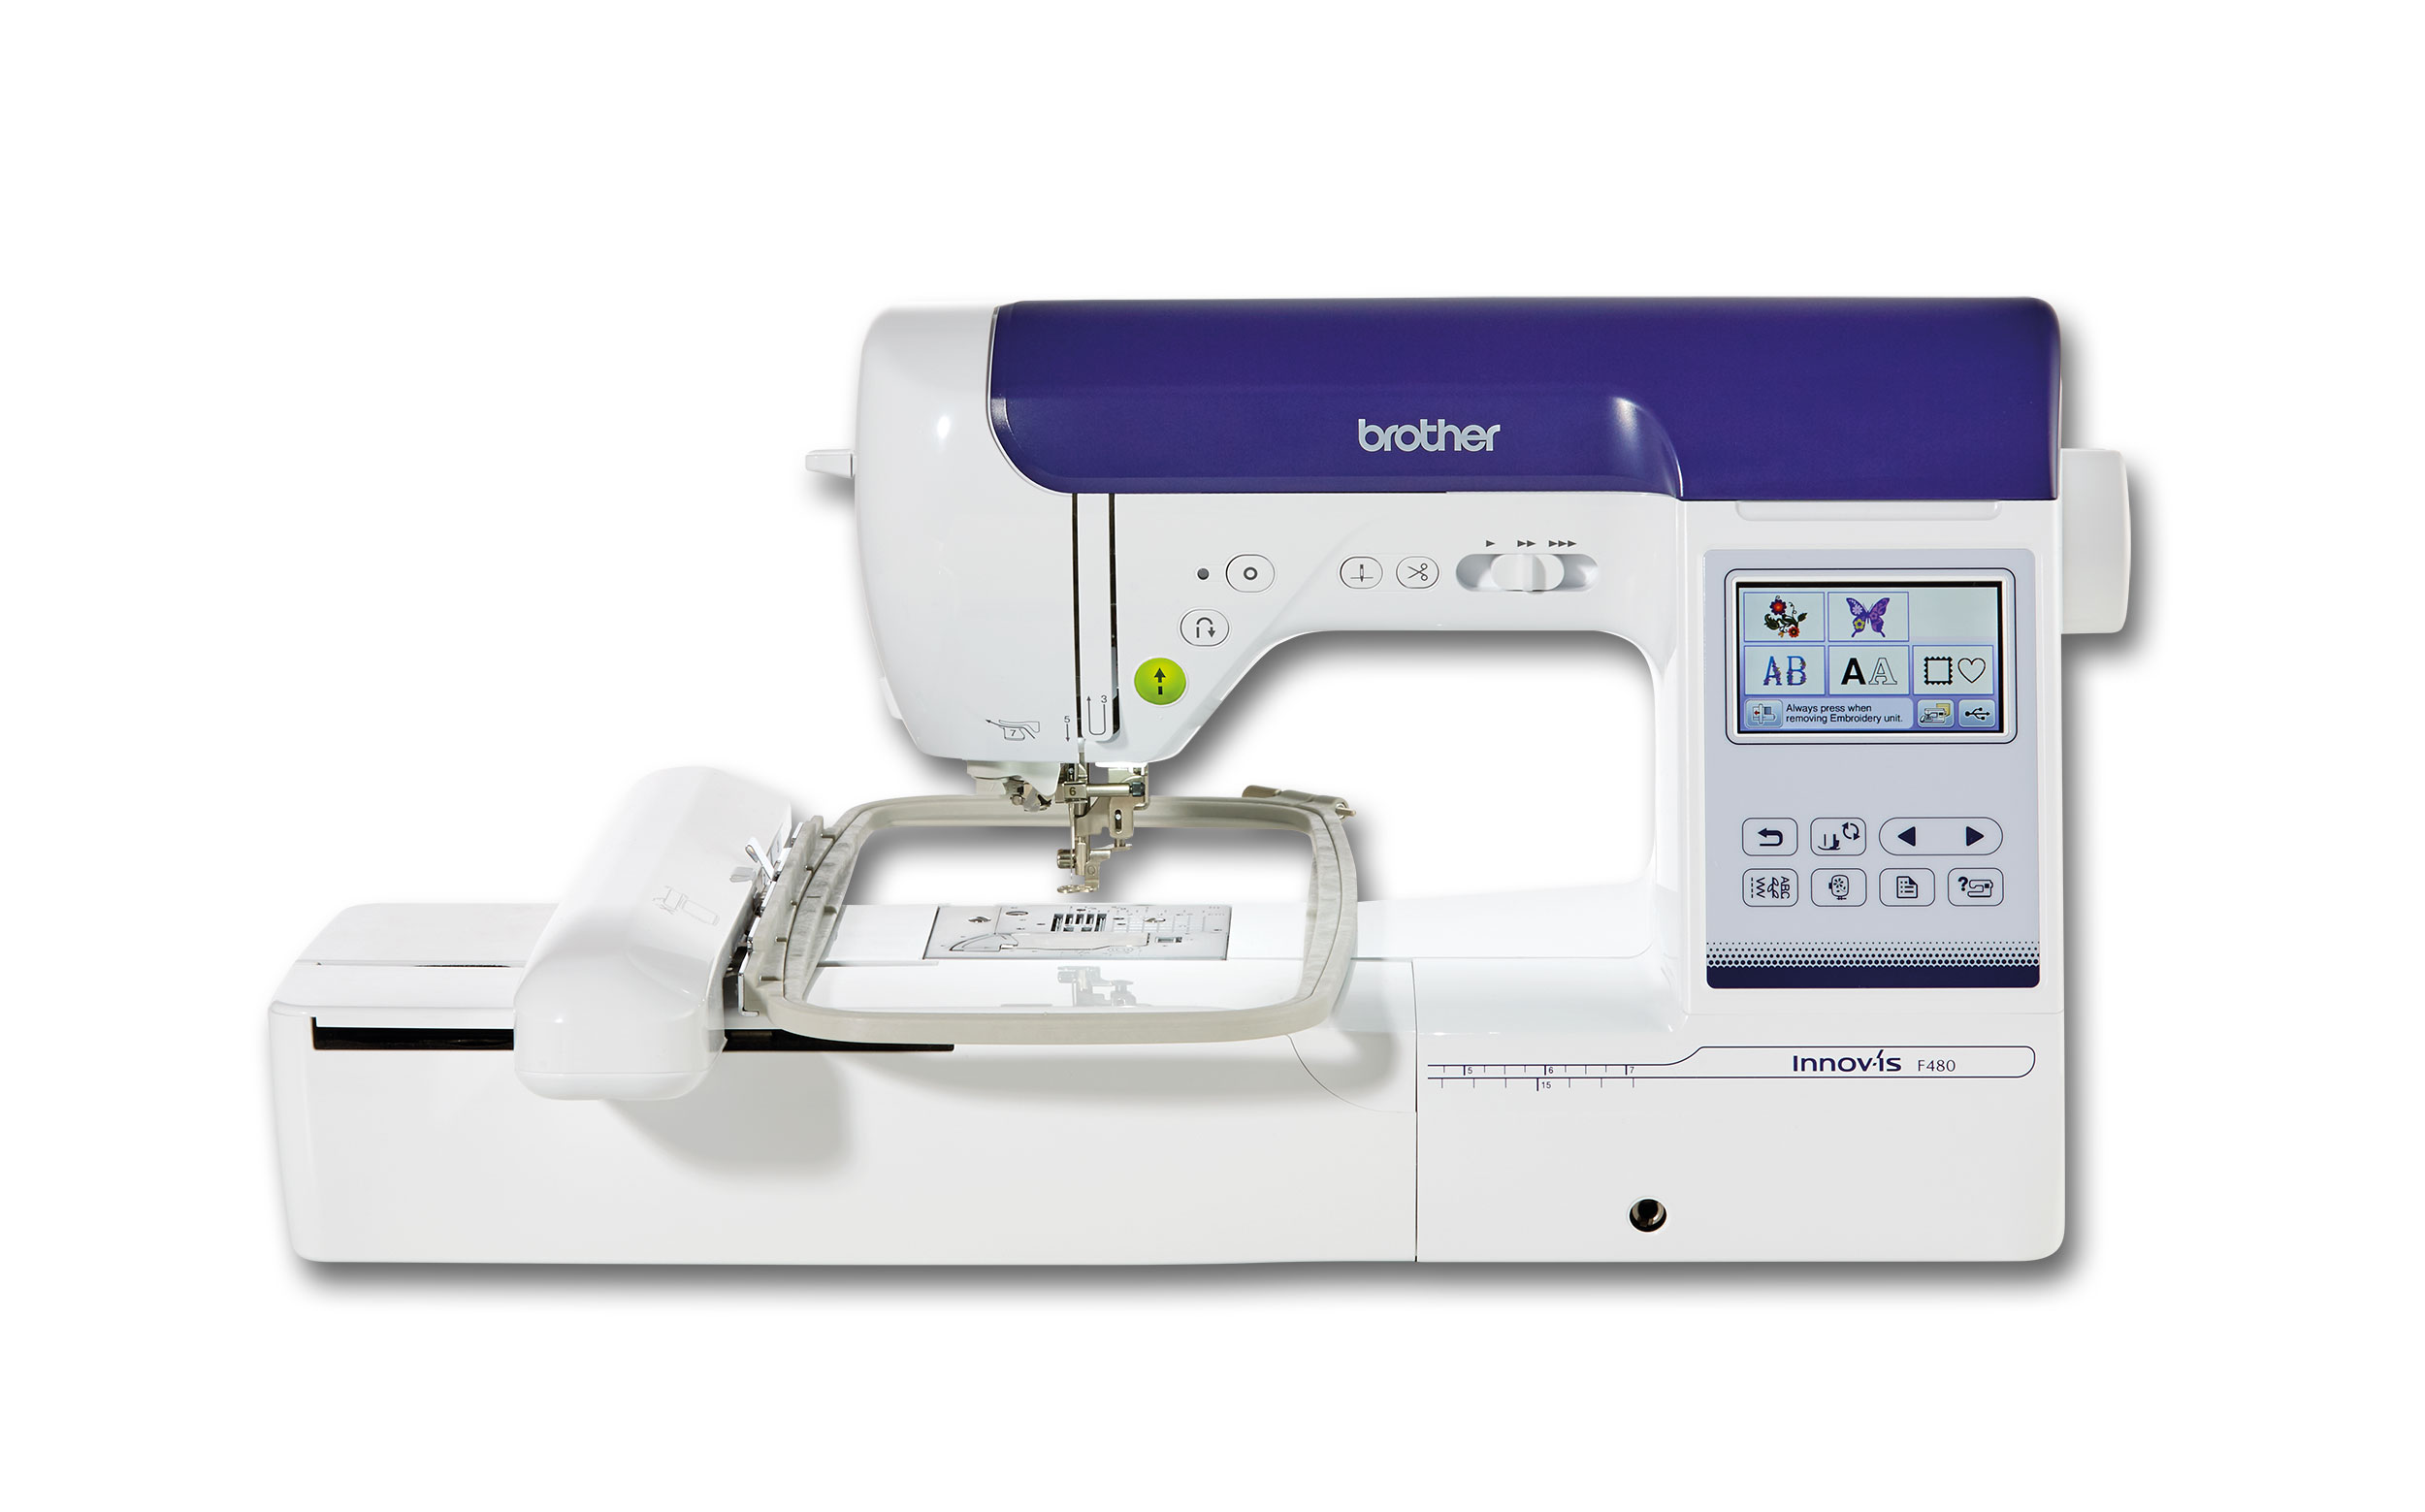 Brother innov-is F480 Sewing & Embroidery Machine